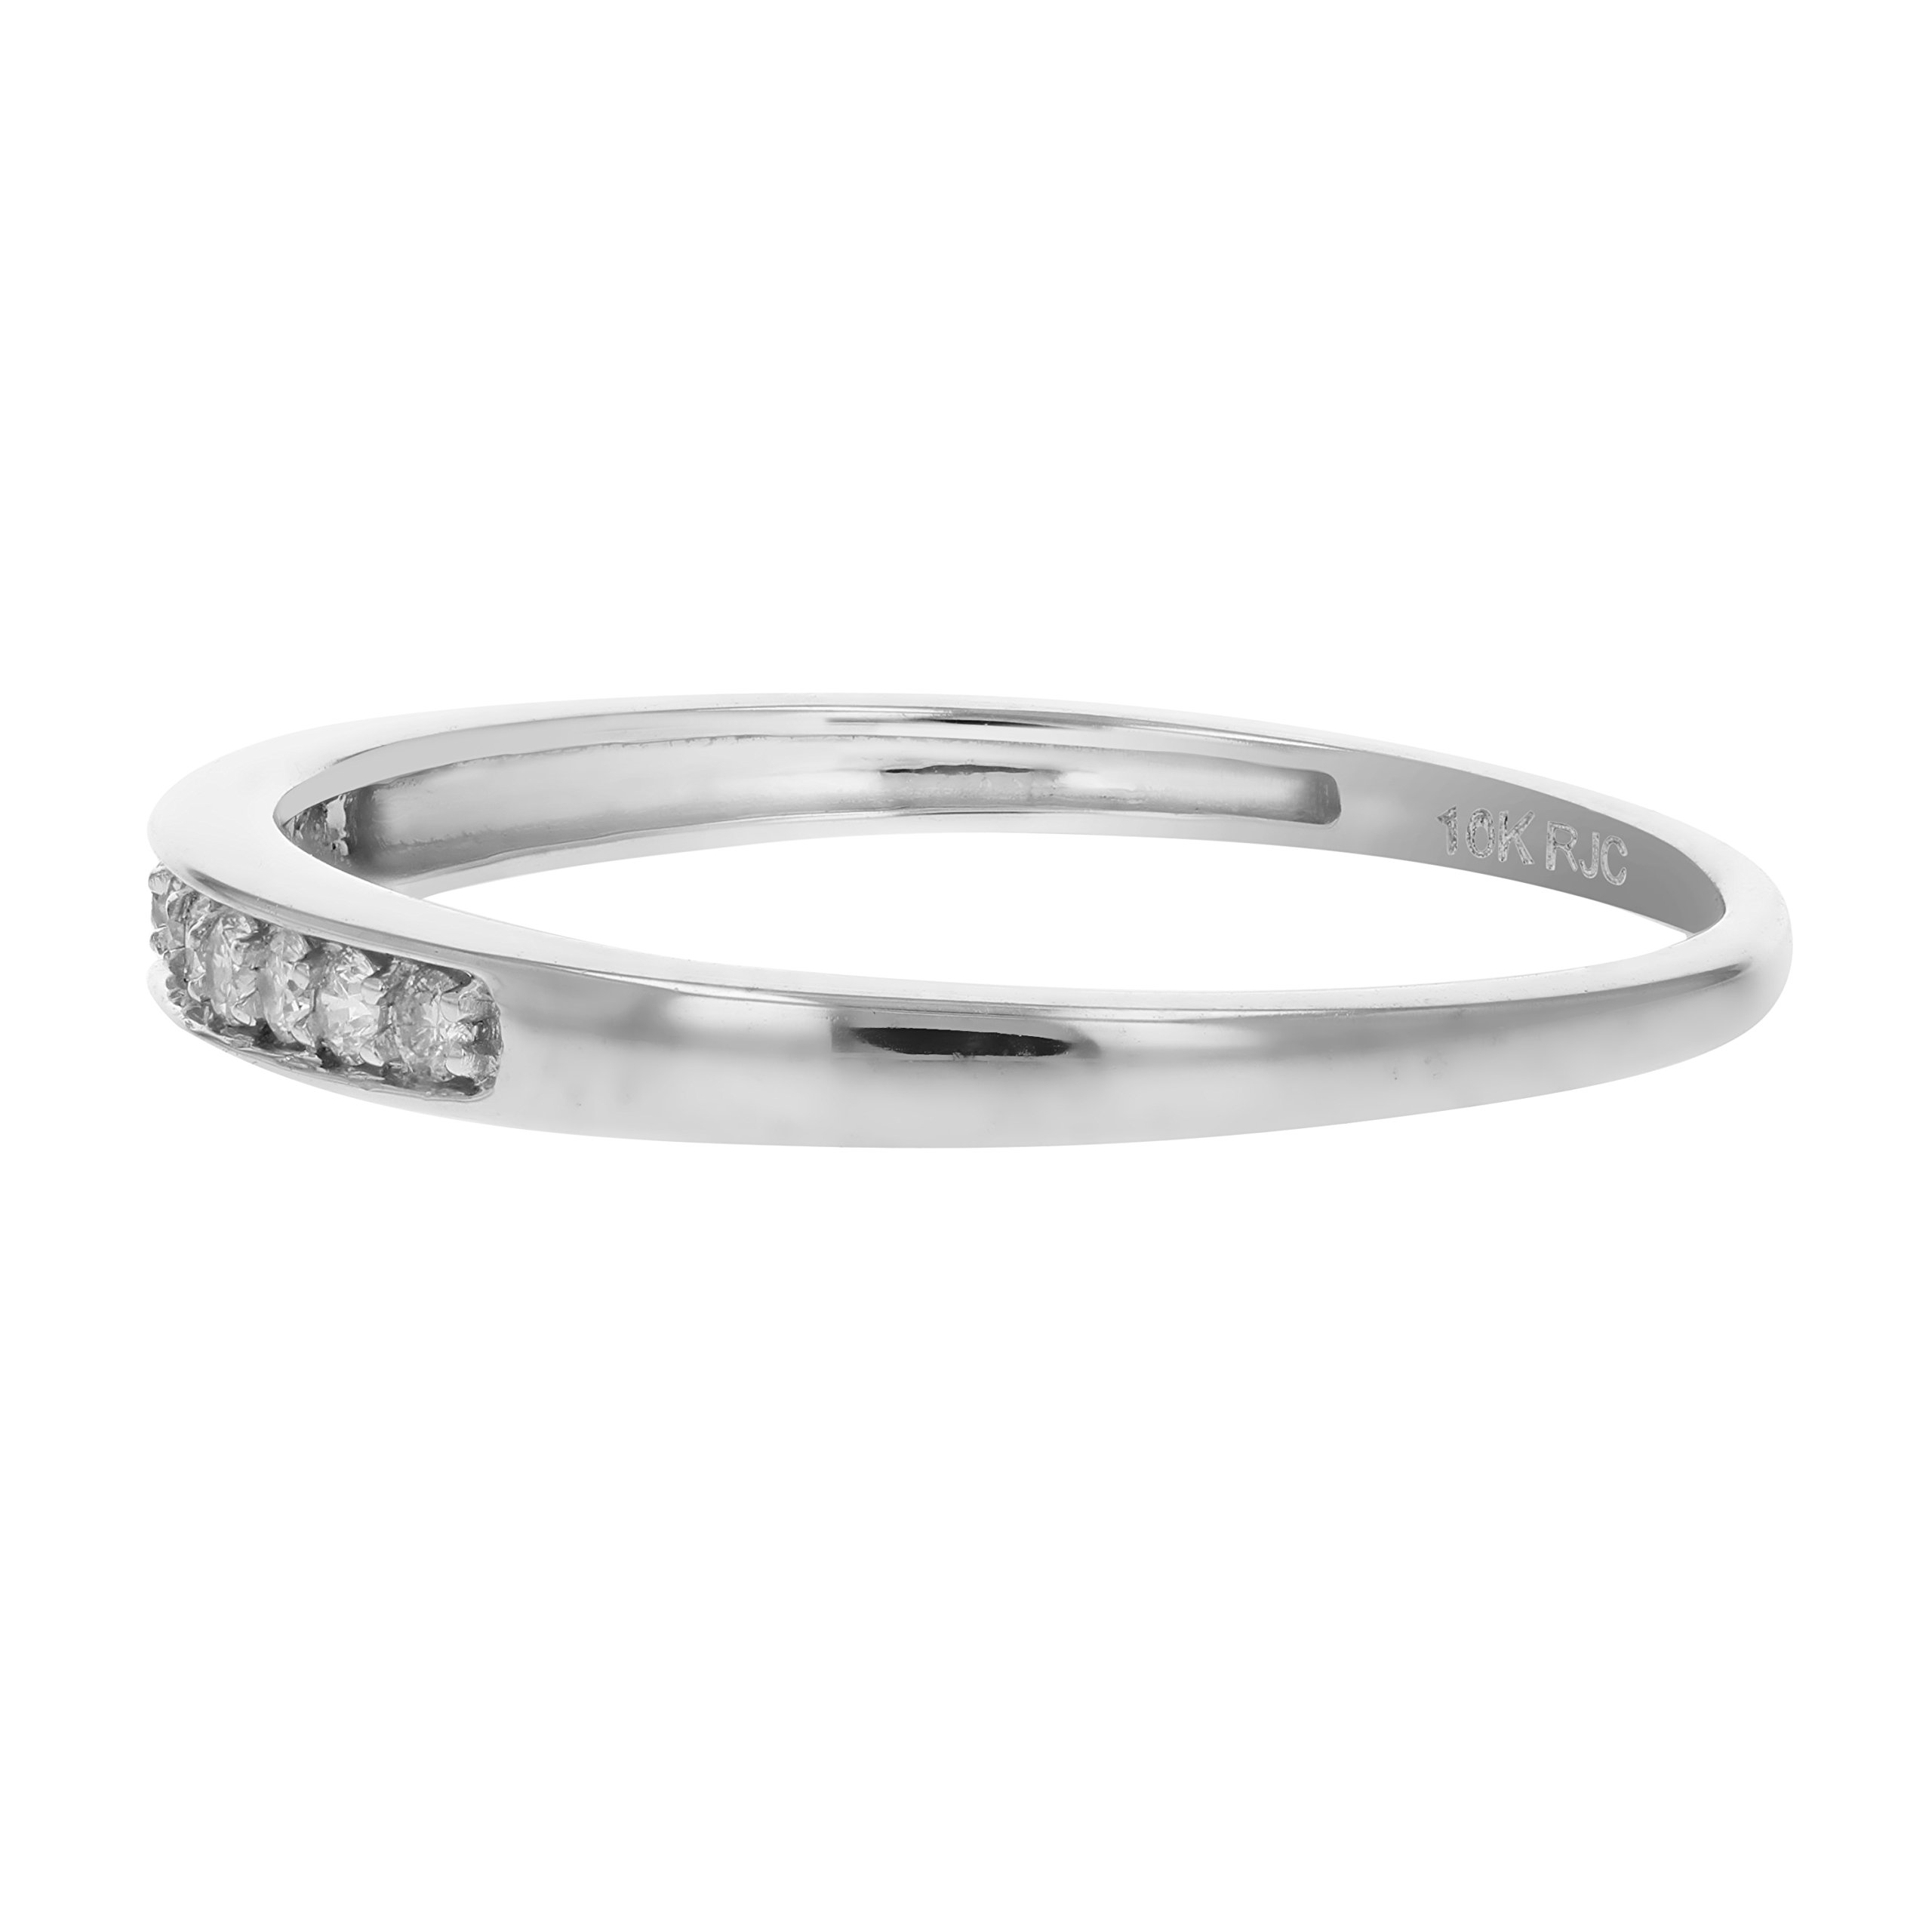 1/10 cttw Diamond Wedding Band 10K White Gold Size 10 by Vir Jewels (Image #2)